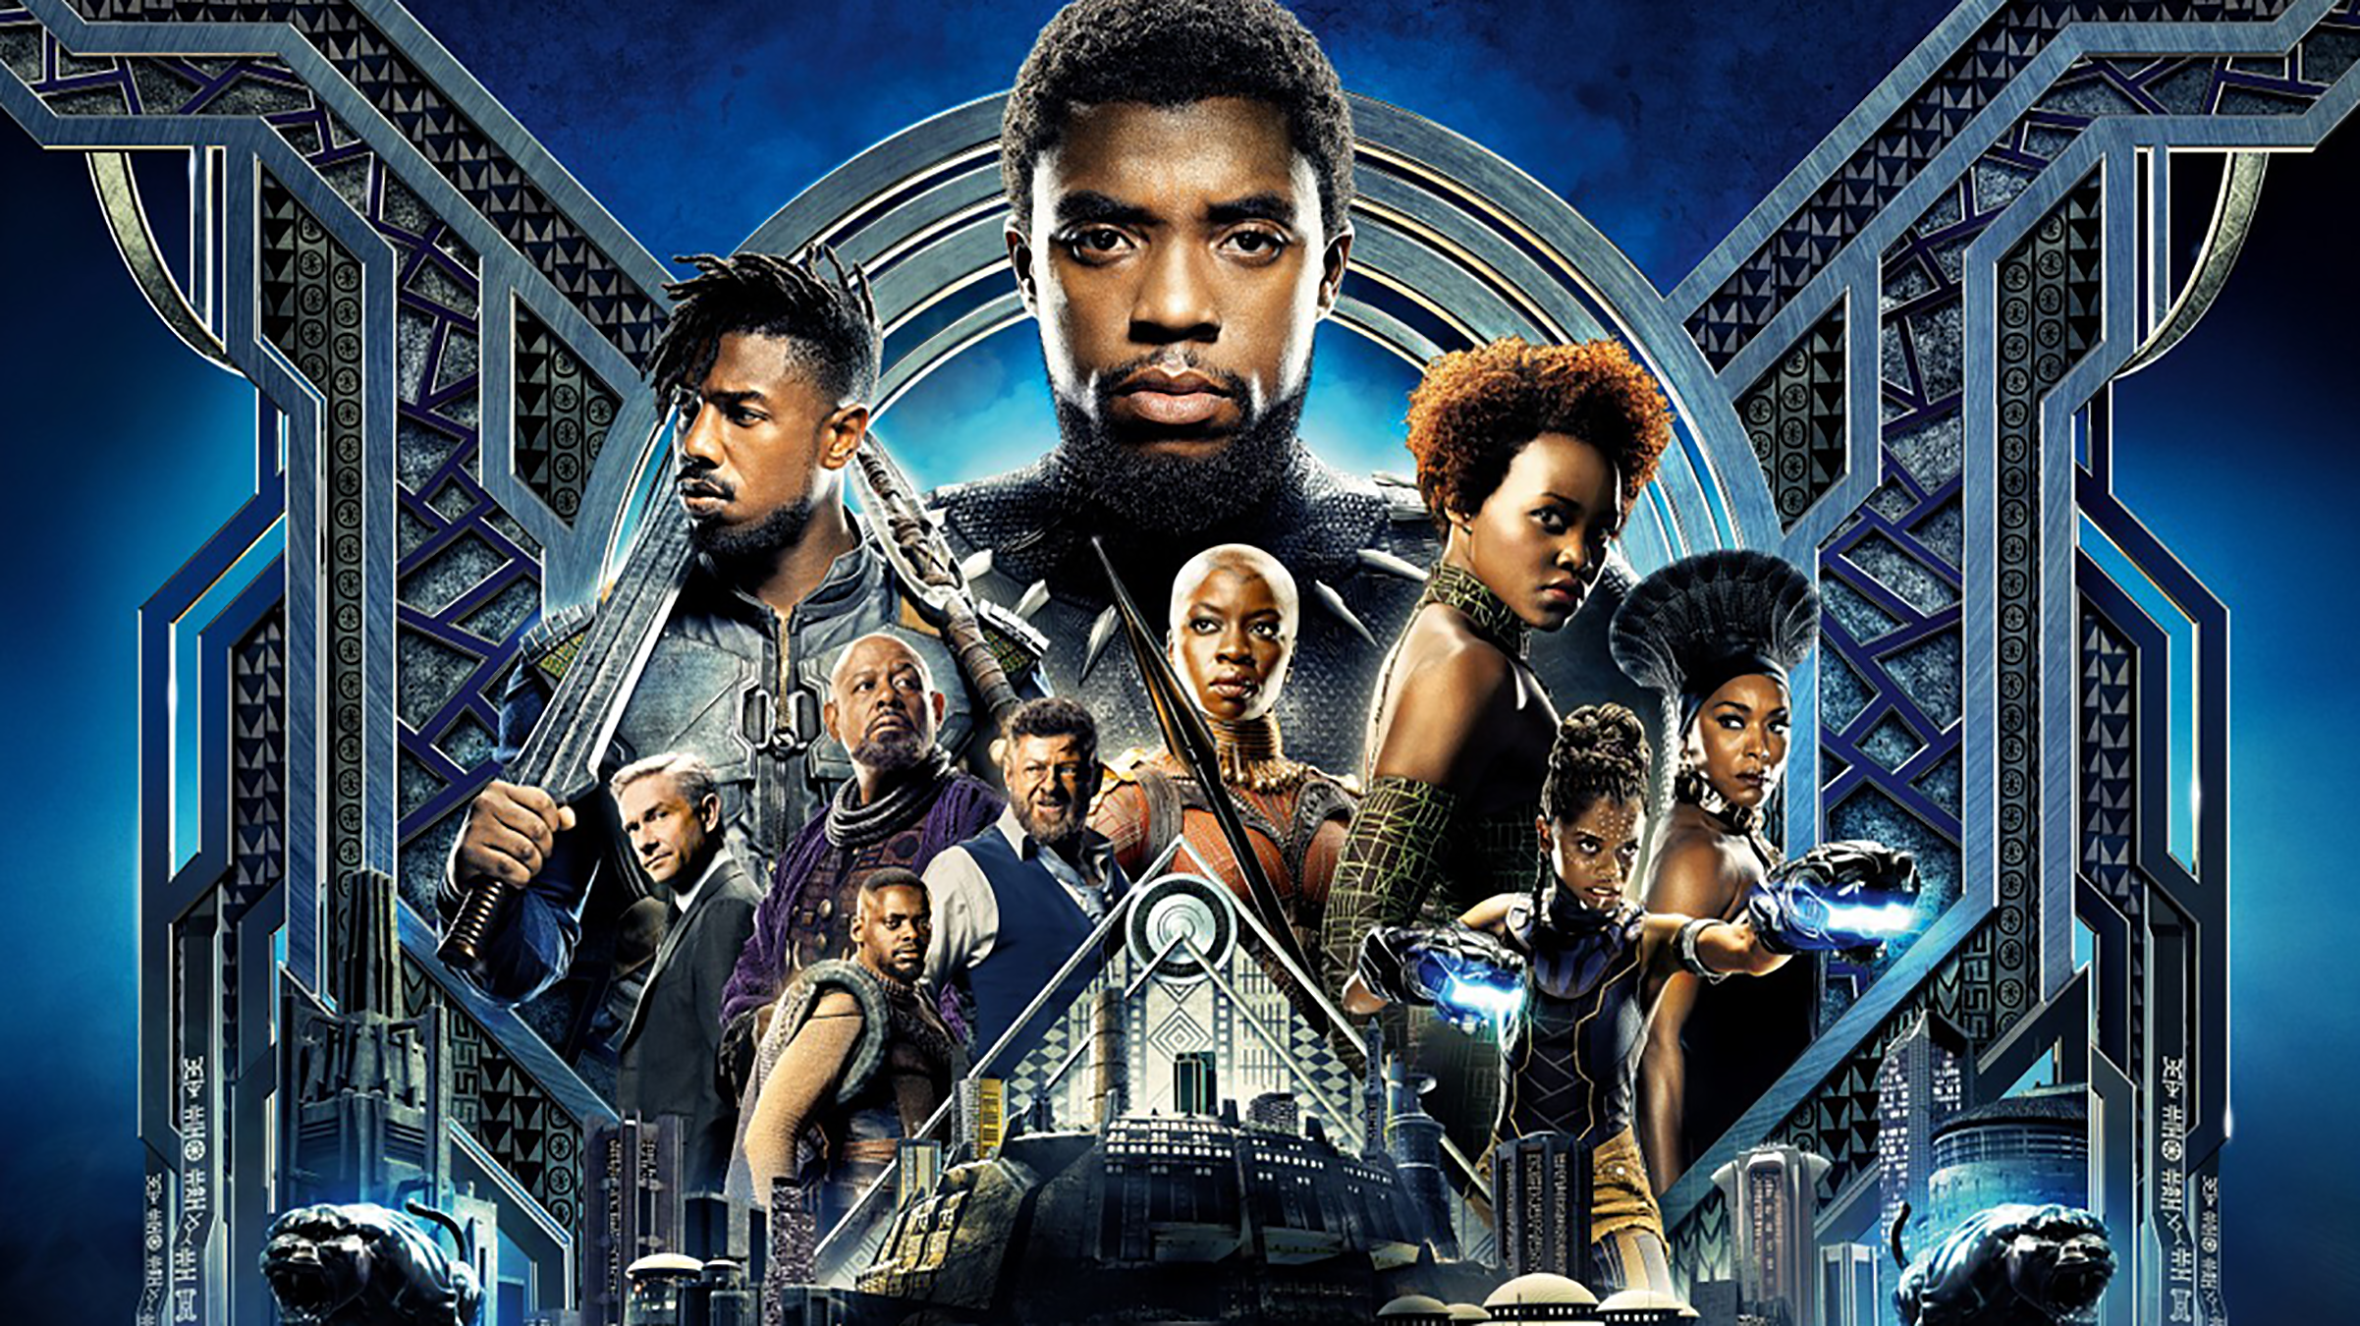 Image of group of characters from the black panther movie